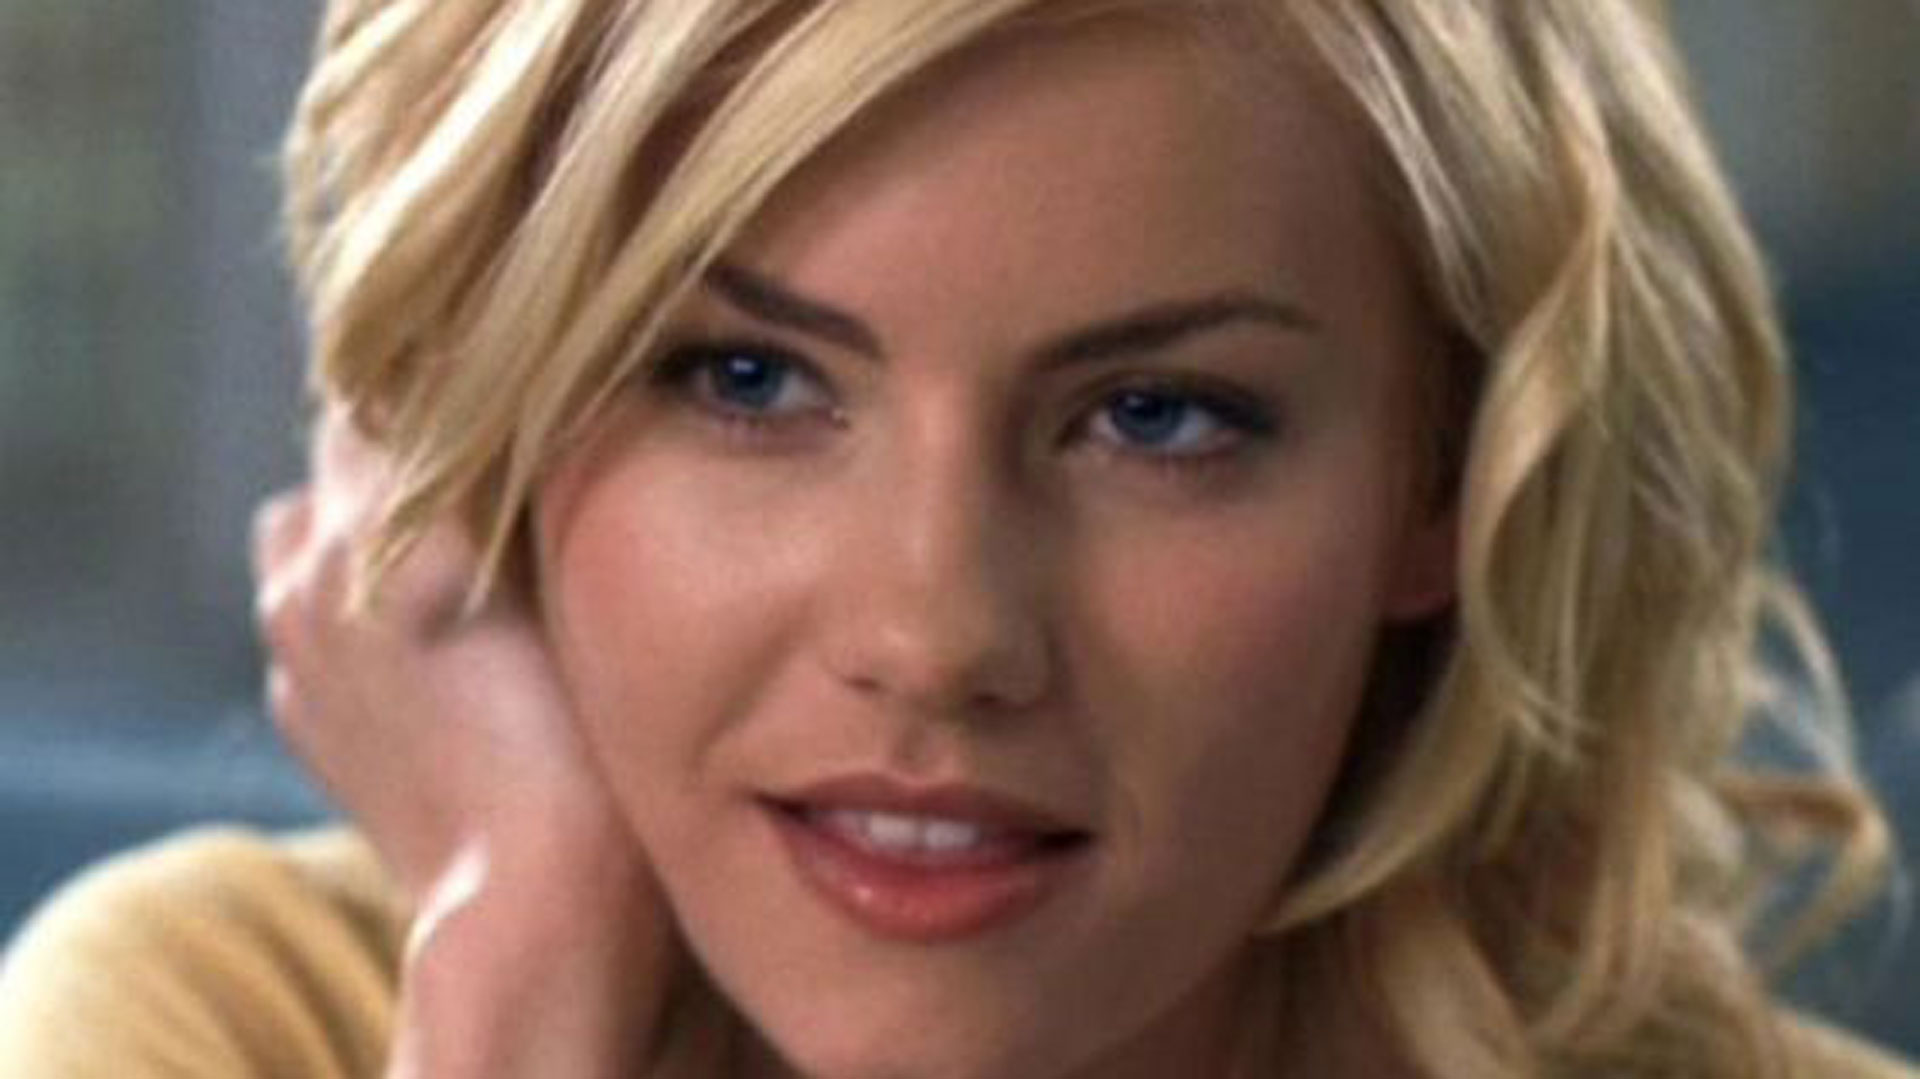 Elisha Cuthbert Girl Next Door Wallpaper Posted By Zoey Sellers